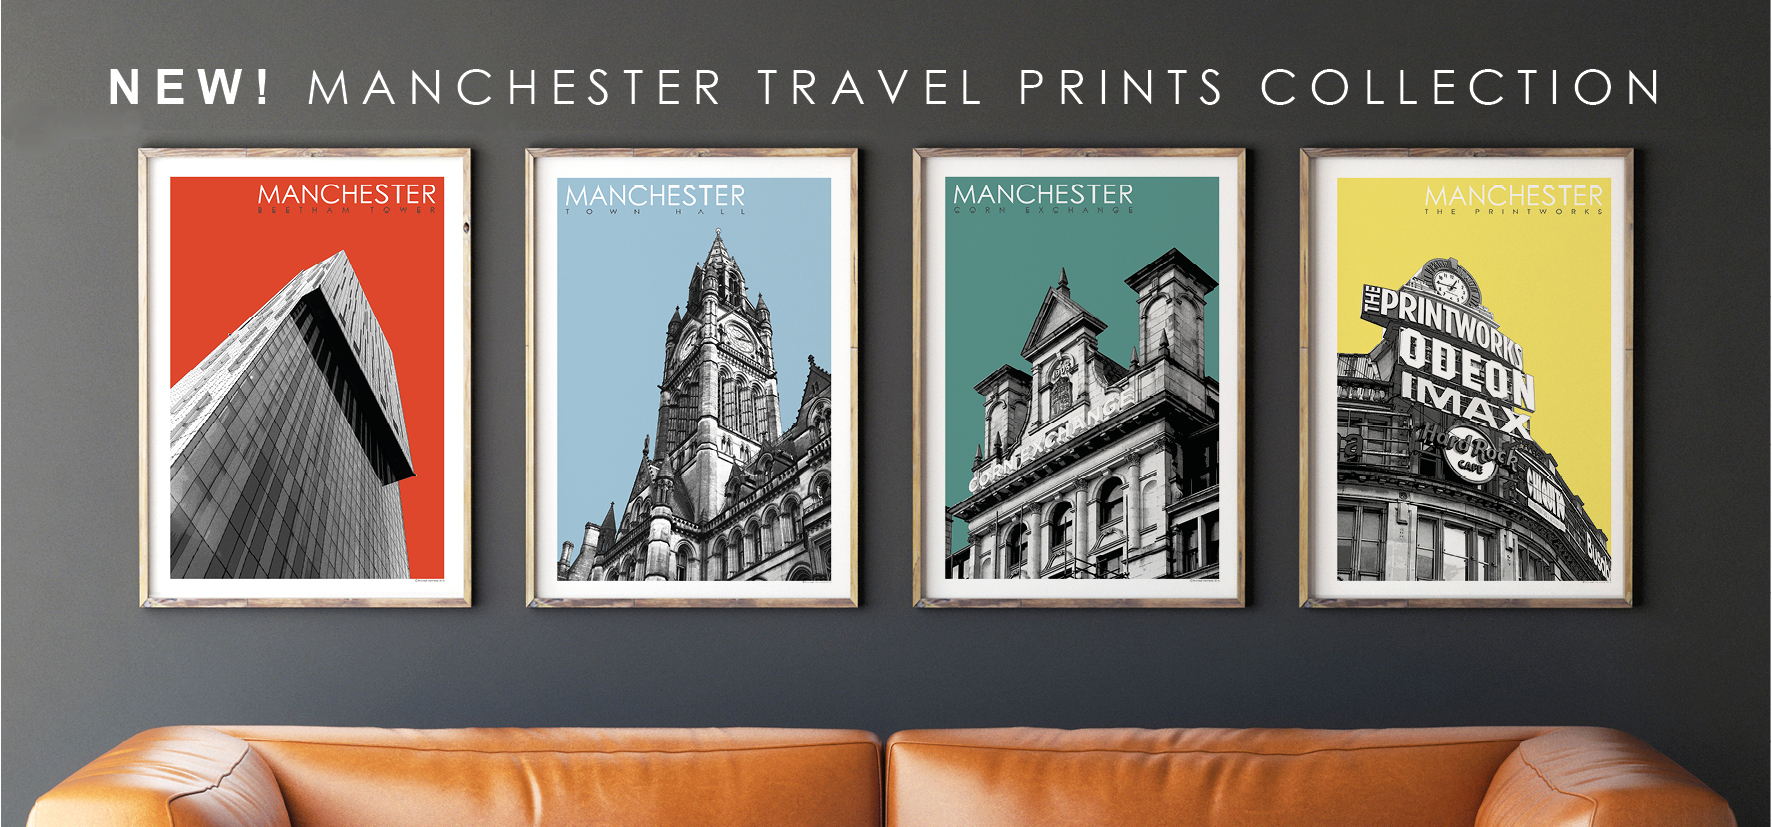 Manchester Travel Prints